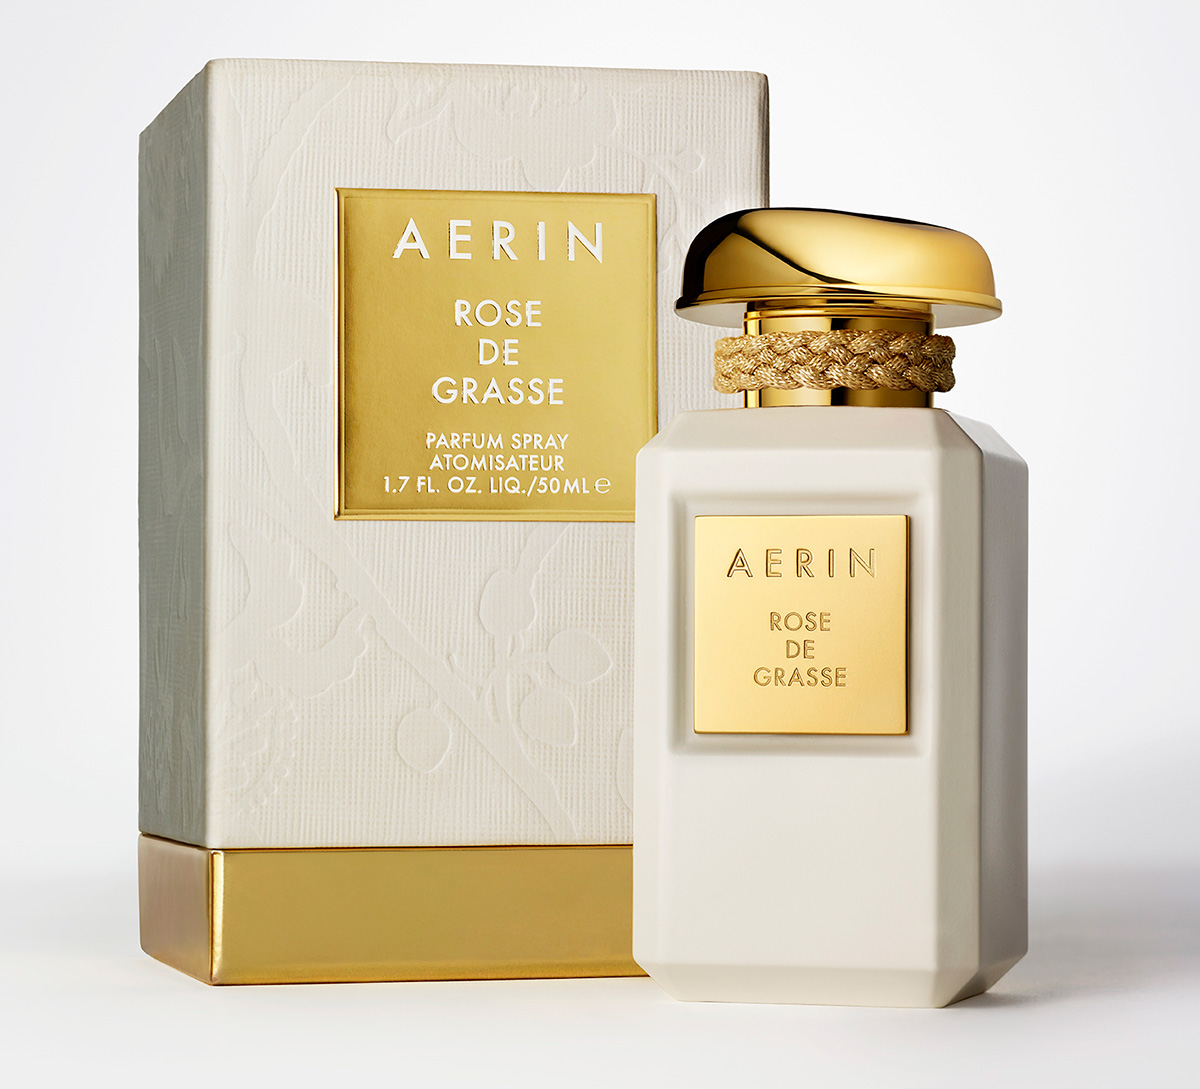 Rose De Grasse Aerin Lauder Perfume A Fragrance For Women 2015